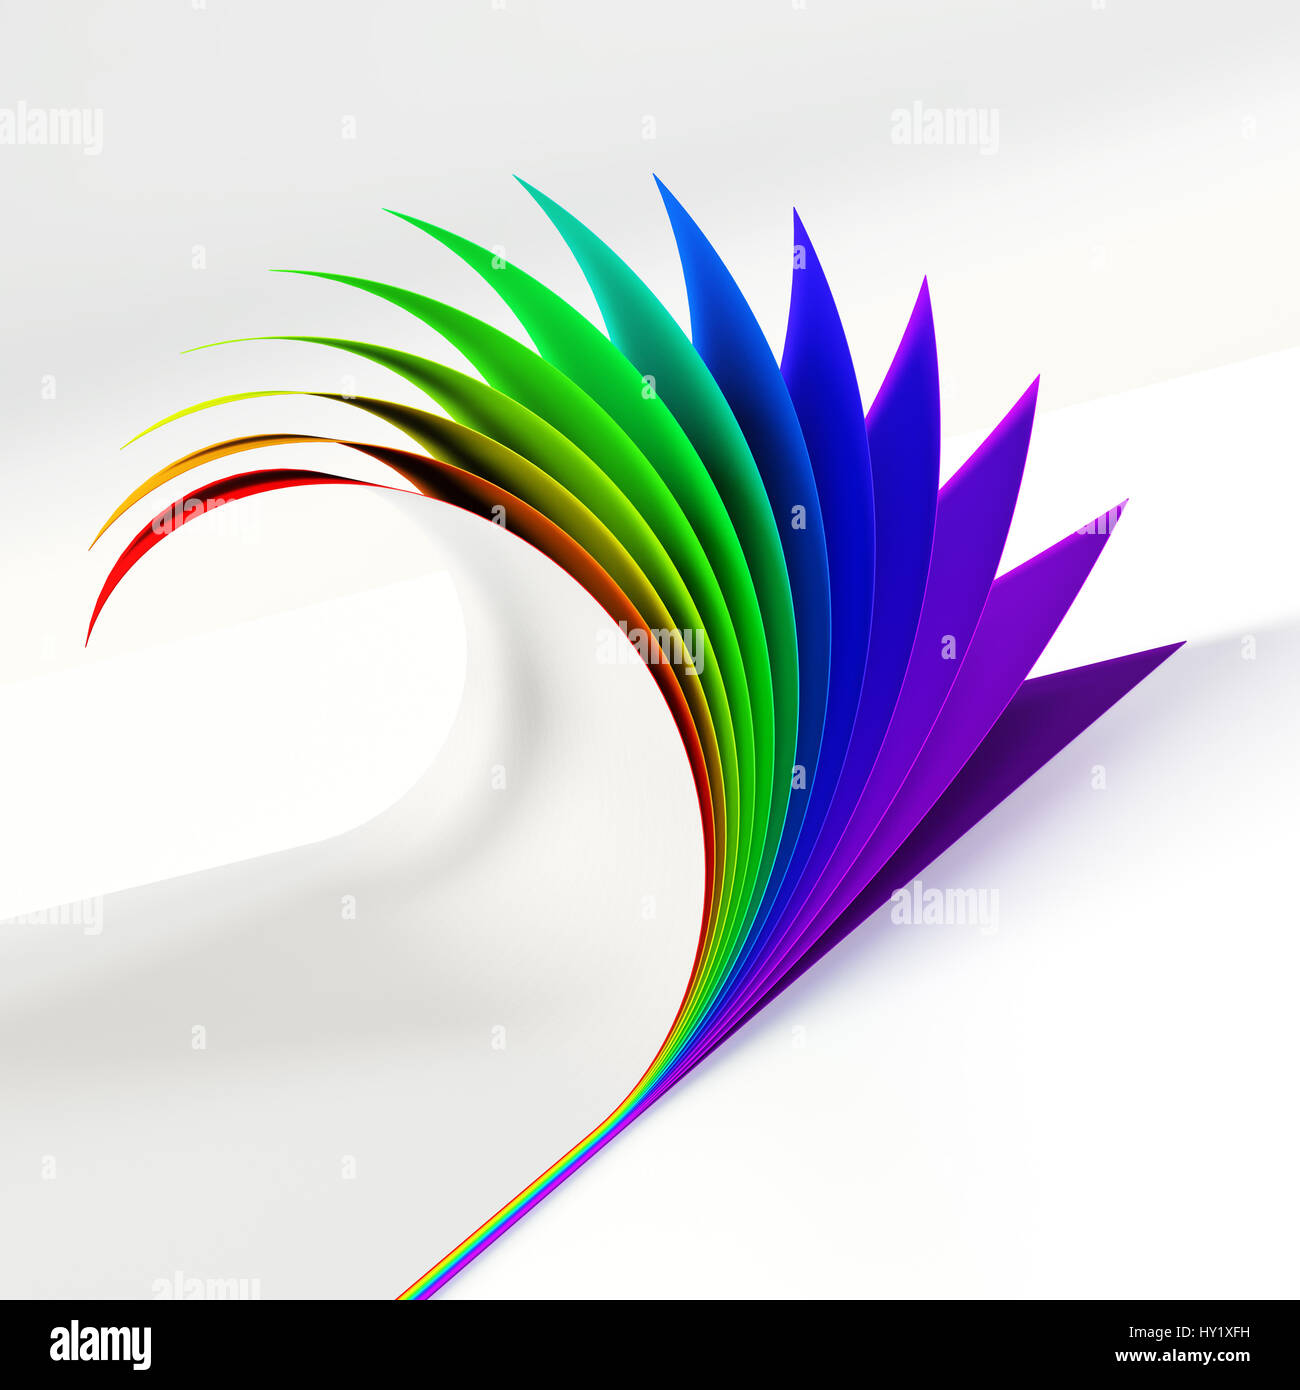 blank document rainbow colored curled corner side view graphic design element empty poster template